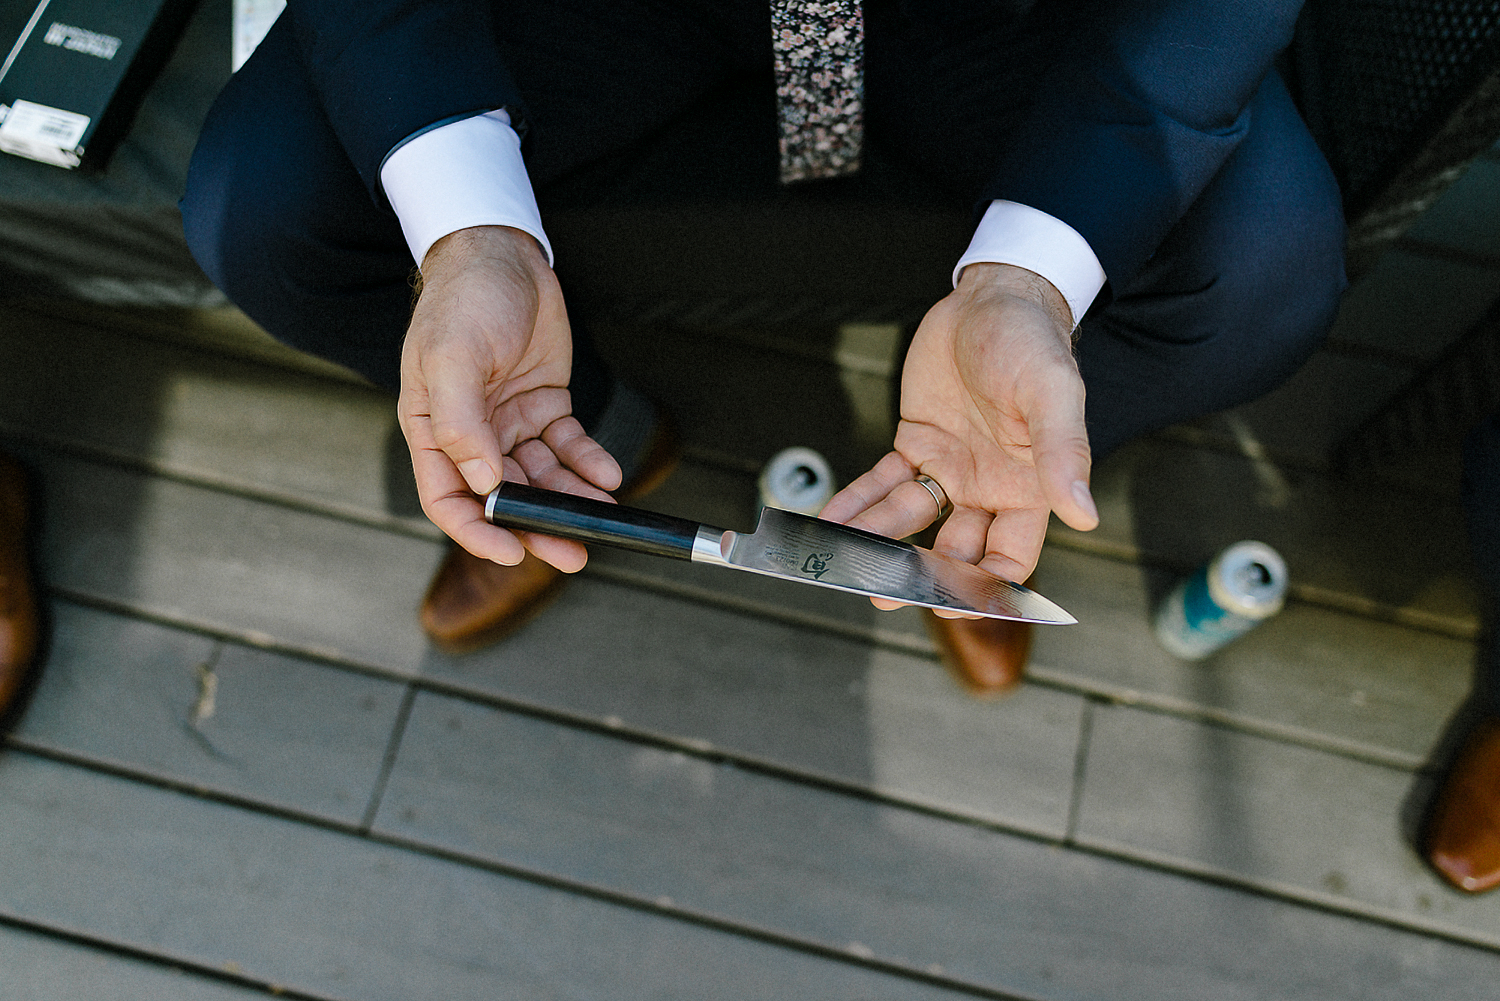 Toronto-Wedding-Photographers-3B-Photography-Airship37-Wedding-Photos-Documentary-Photojournalistic-Wedding-Photography-Venue-Details-Candid-groomsmen-Japanese-Knives.jpg